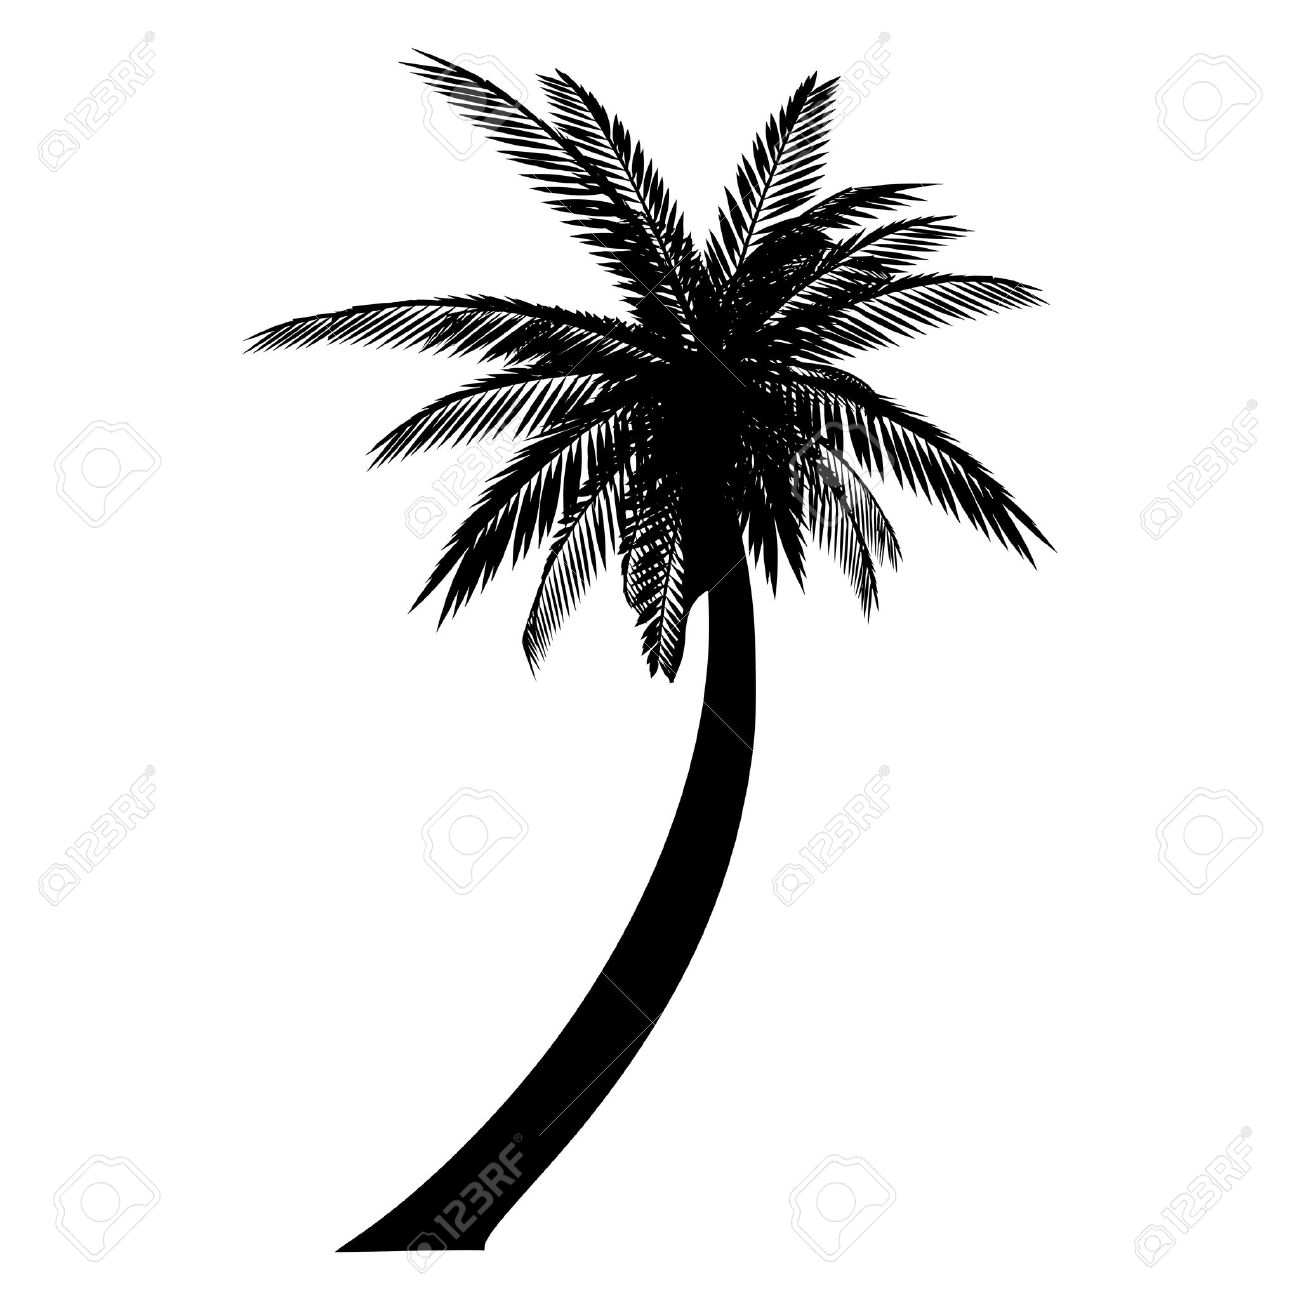 Isolated palm. Silhouette Stock Vector - 13285358